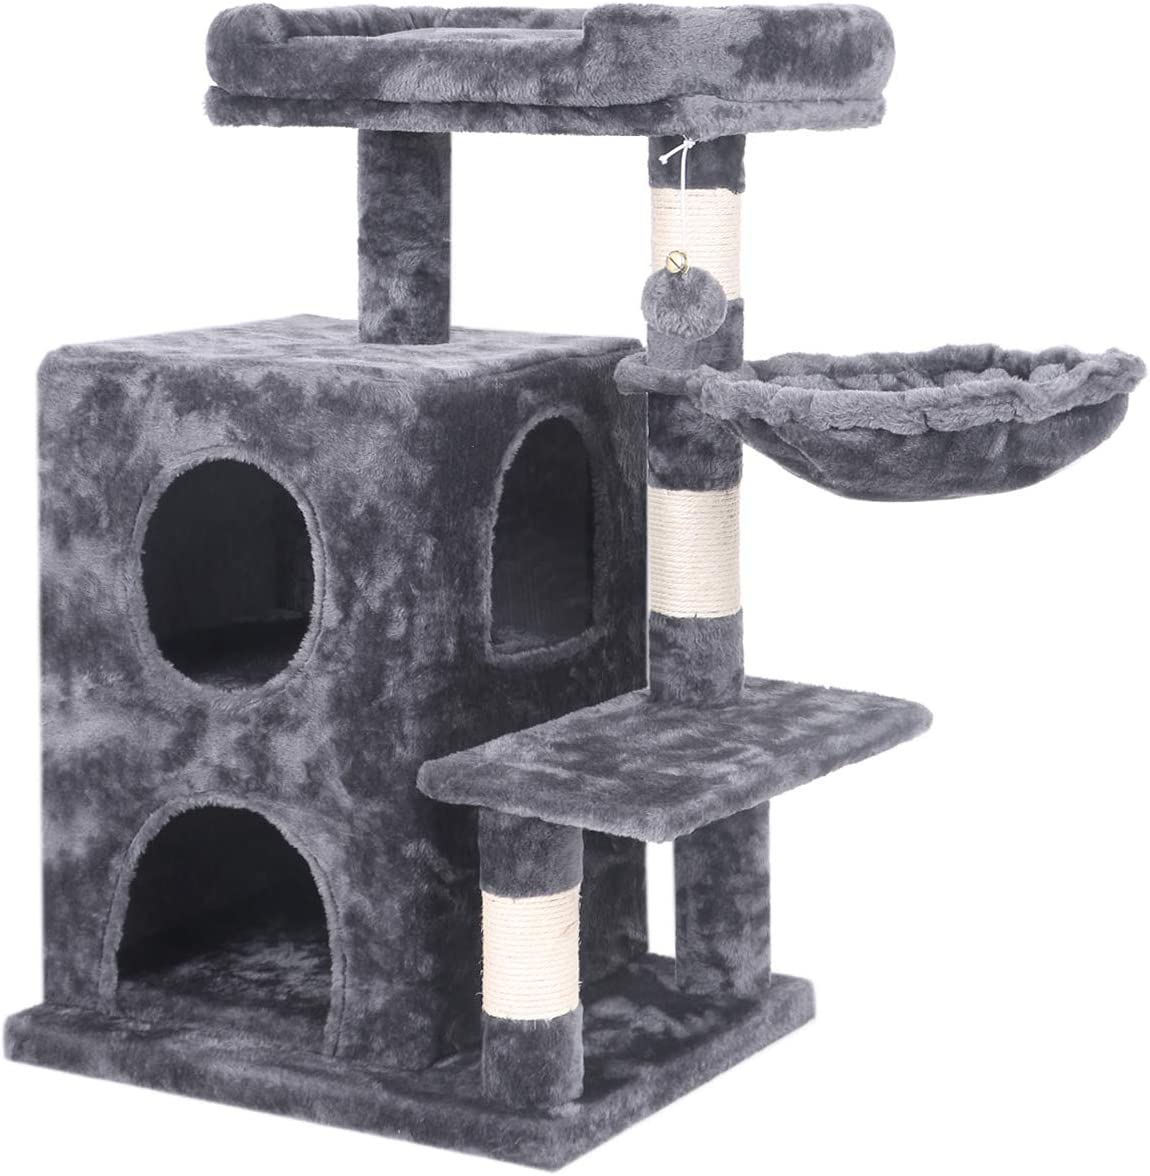 BEWISHOME Cat Tree Condo with Sisal Scratching Posts, Plush Perch, Dual Houses and Basket, Cat Tower Furniture Kitty Activity Center Kitten Play House MMJ06